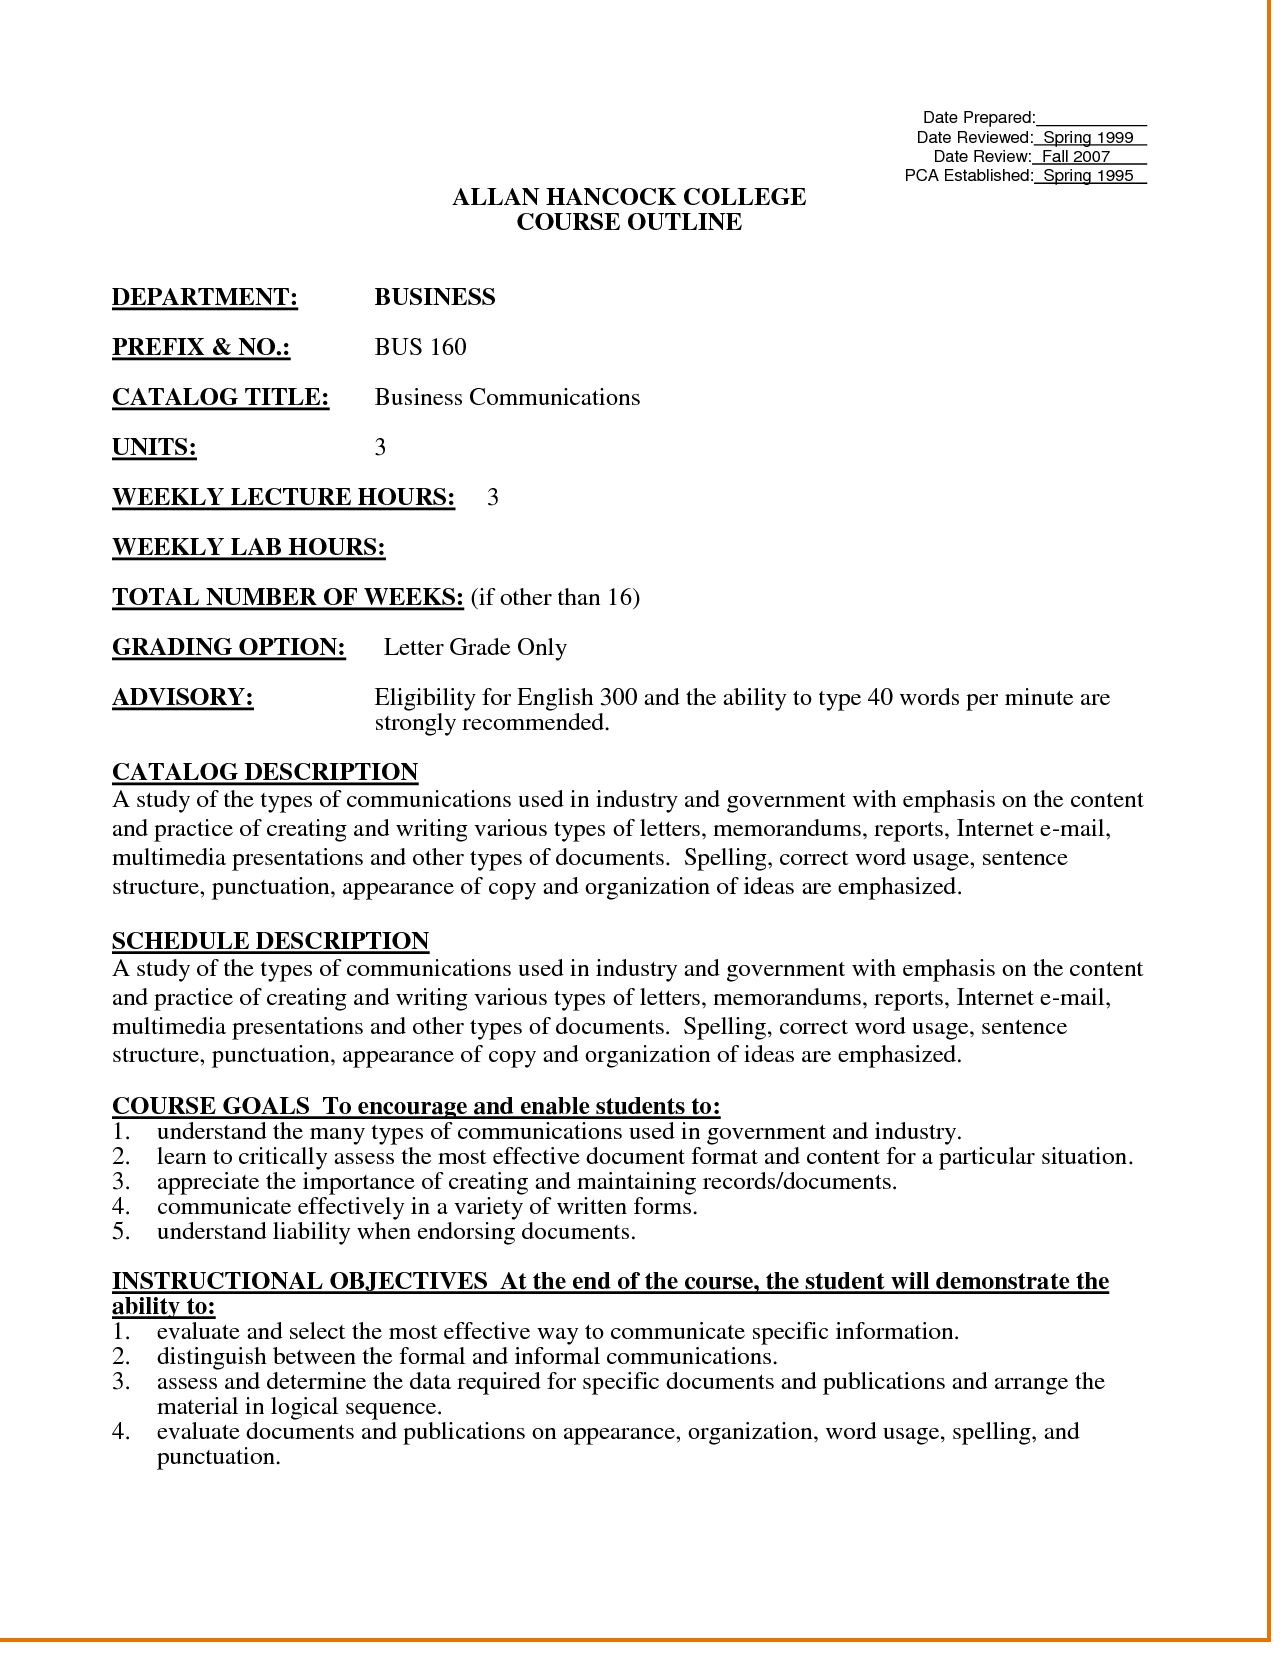 a career in marketing essay In order to apply for any job opening one needs to have a resume of its own which is a summary of the education, skills and experience of an individual.